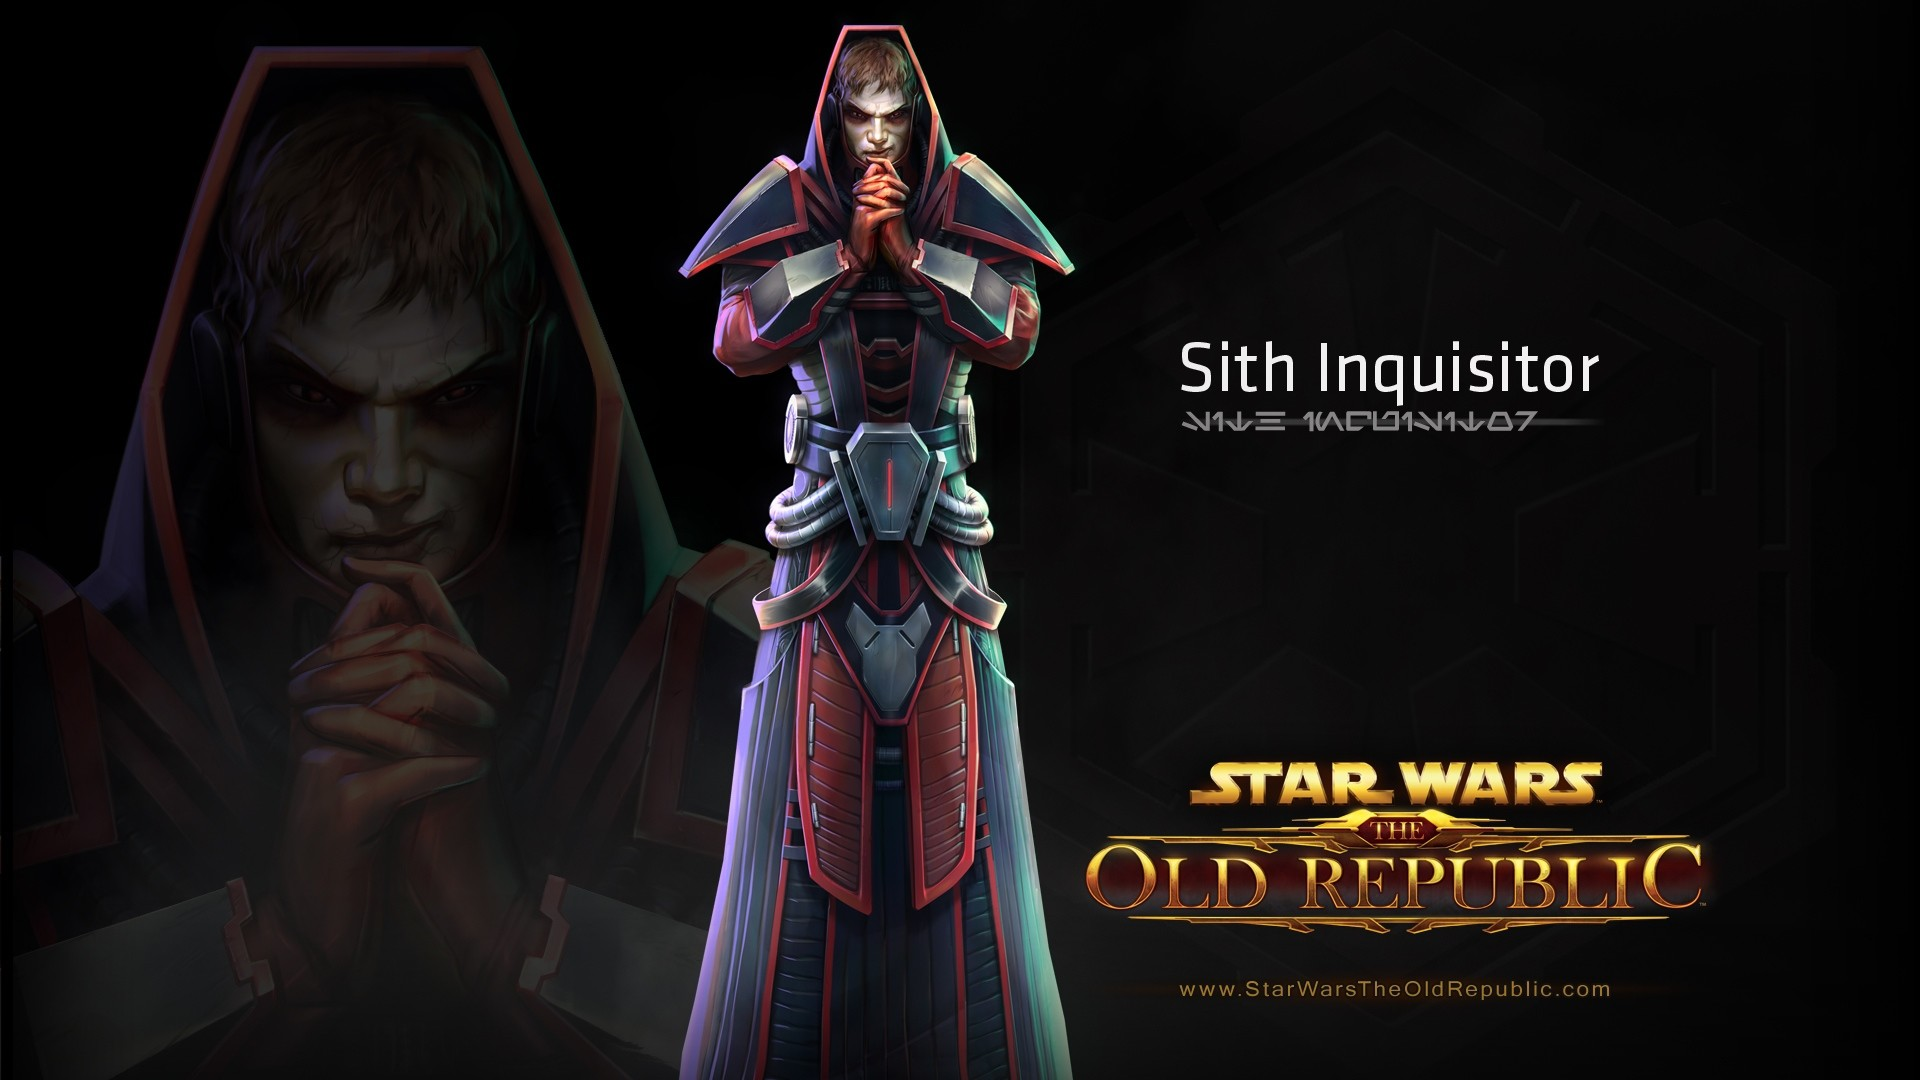 … star wars the old republic, sith inquisitor, character